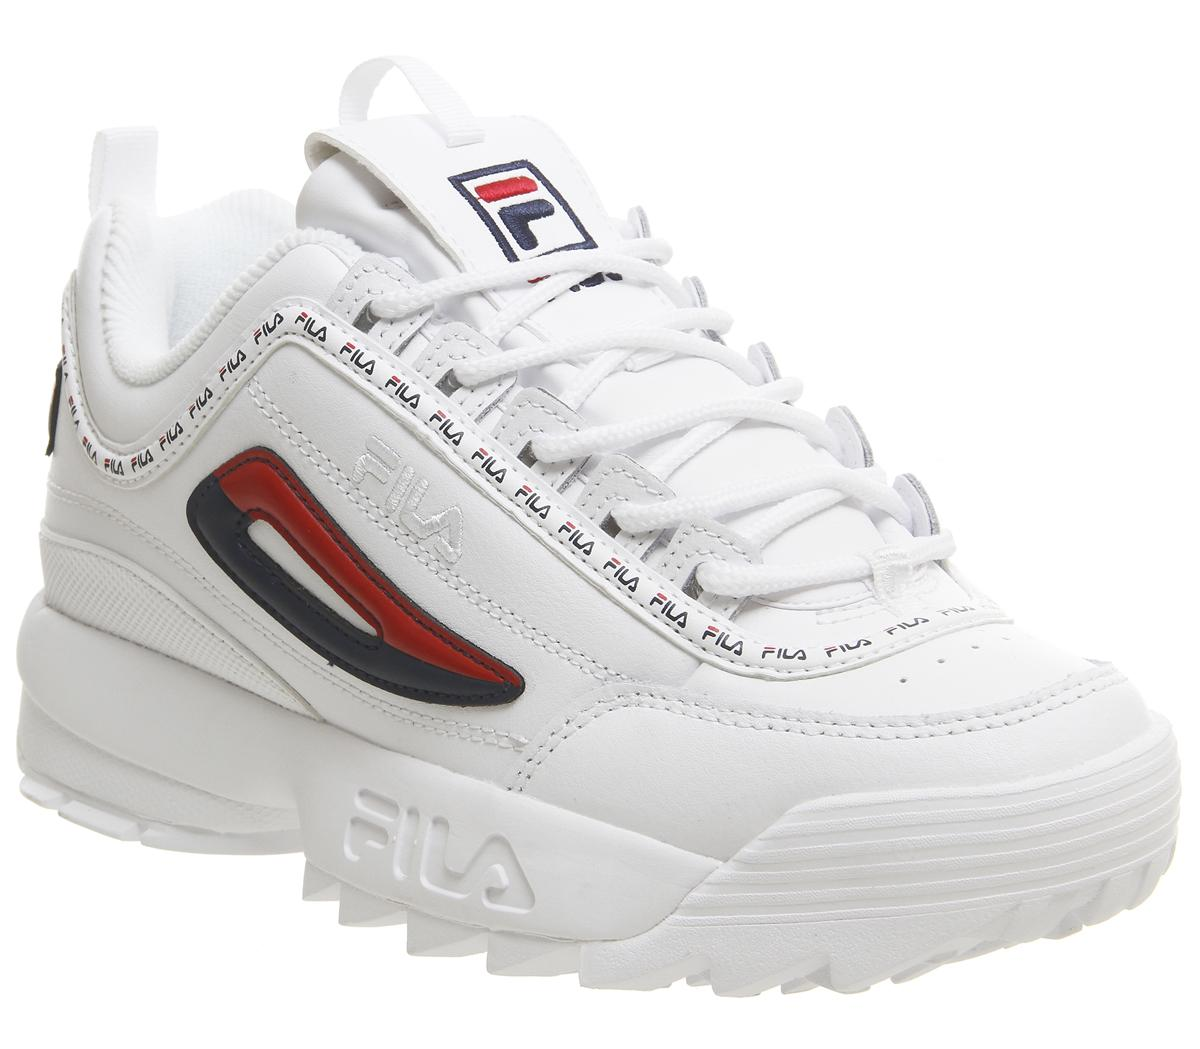 Fila Disruptor II Trainers White Repeat - Sneaker damen